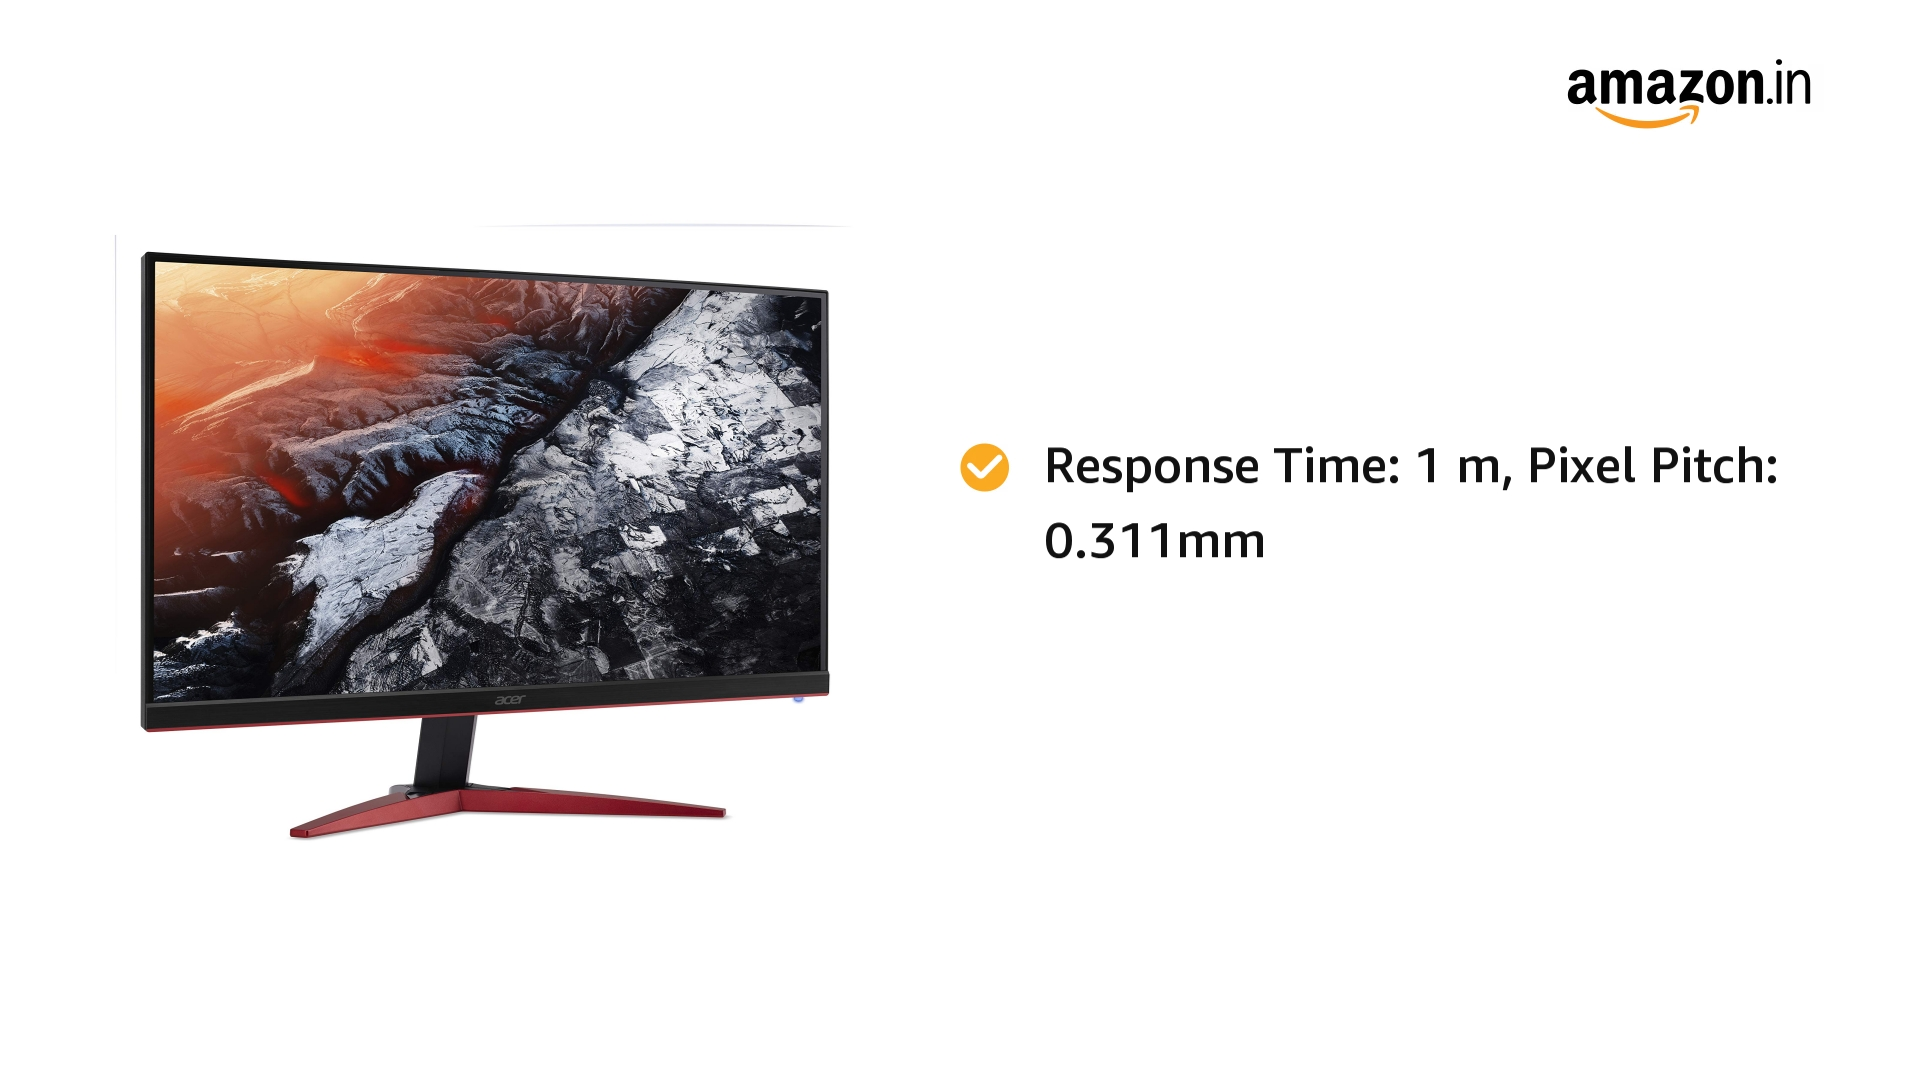 Acer 27-inch (68.58 cm) Full HD TN Panel Gaming Monitor with 1920 x 1080 Resolution - KG271 Cbmidpx (Black)